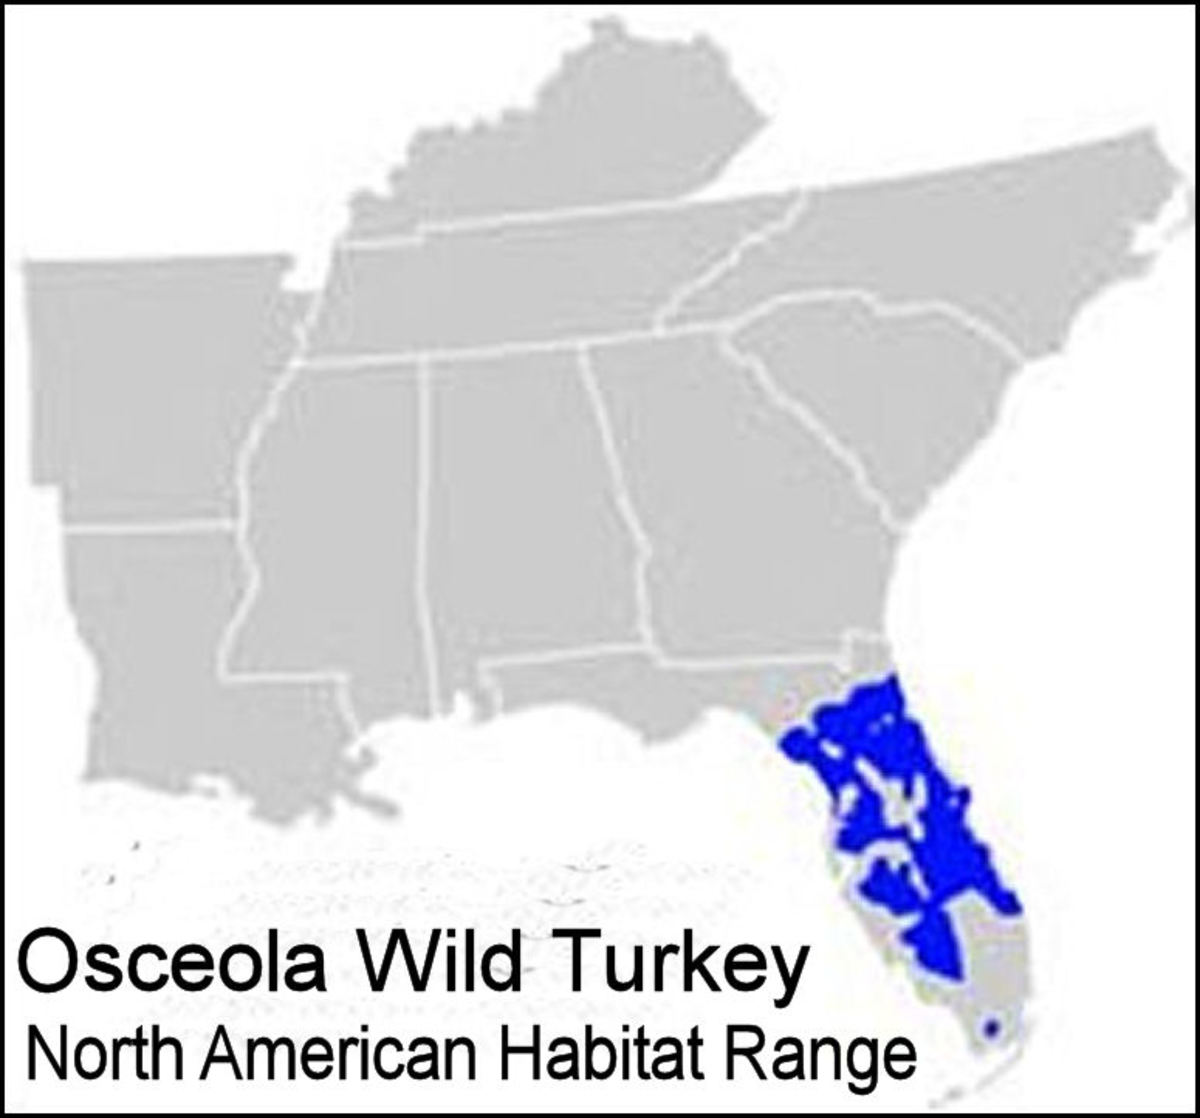 The Osceola subspecies' range is restricted to the central area of the Florida Peninsula.